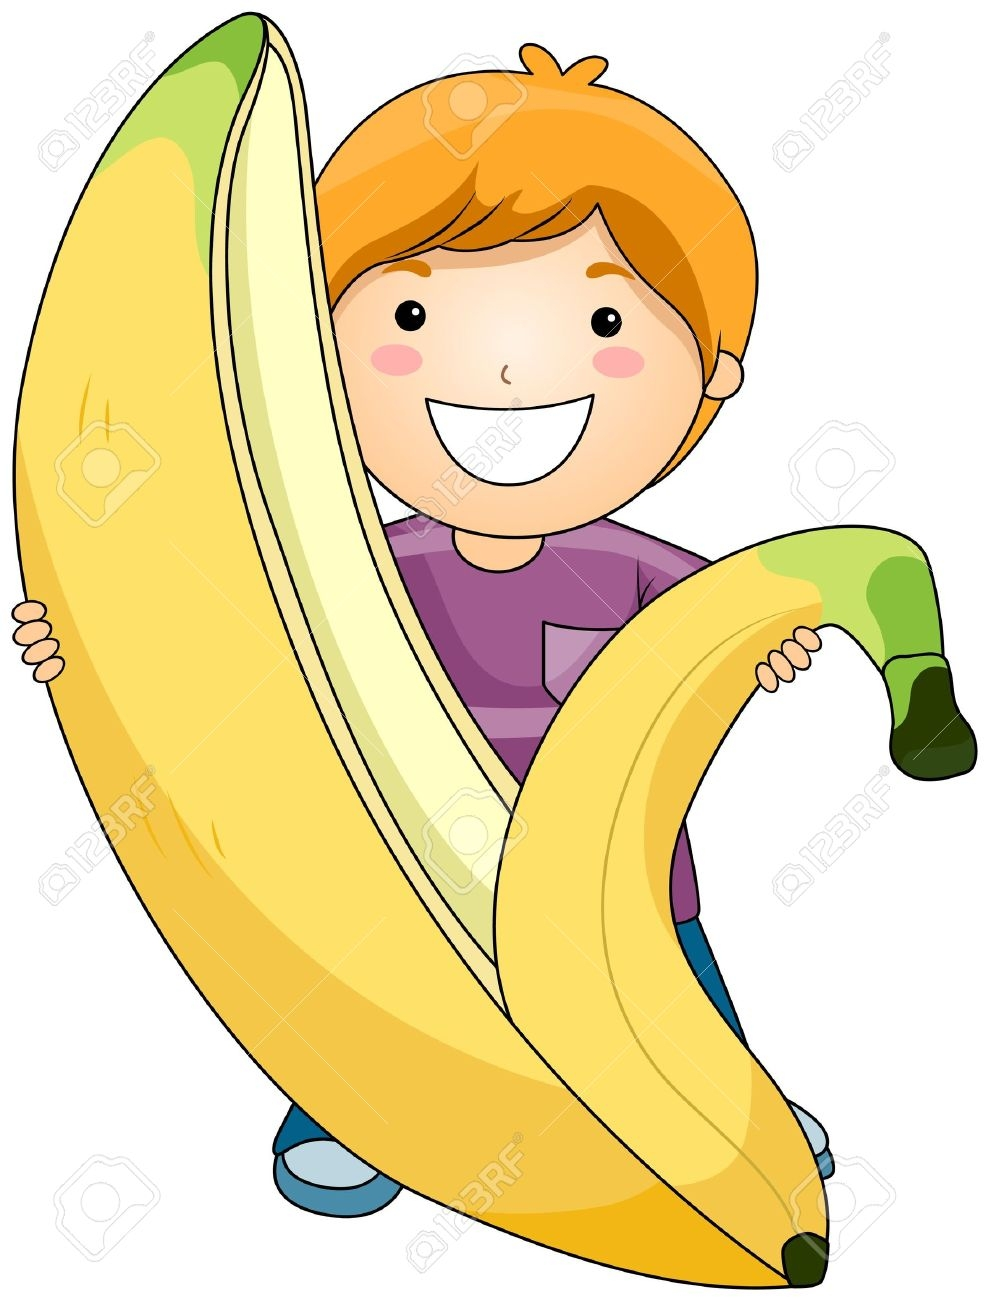 Banana clipart individual Clipart Eating Banana Banana clipartsgram